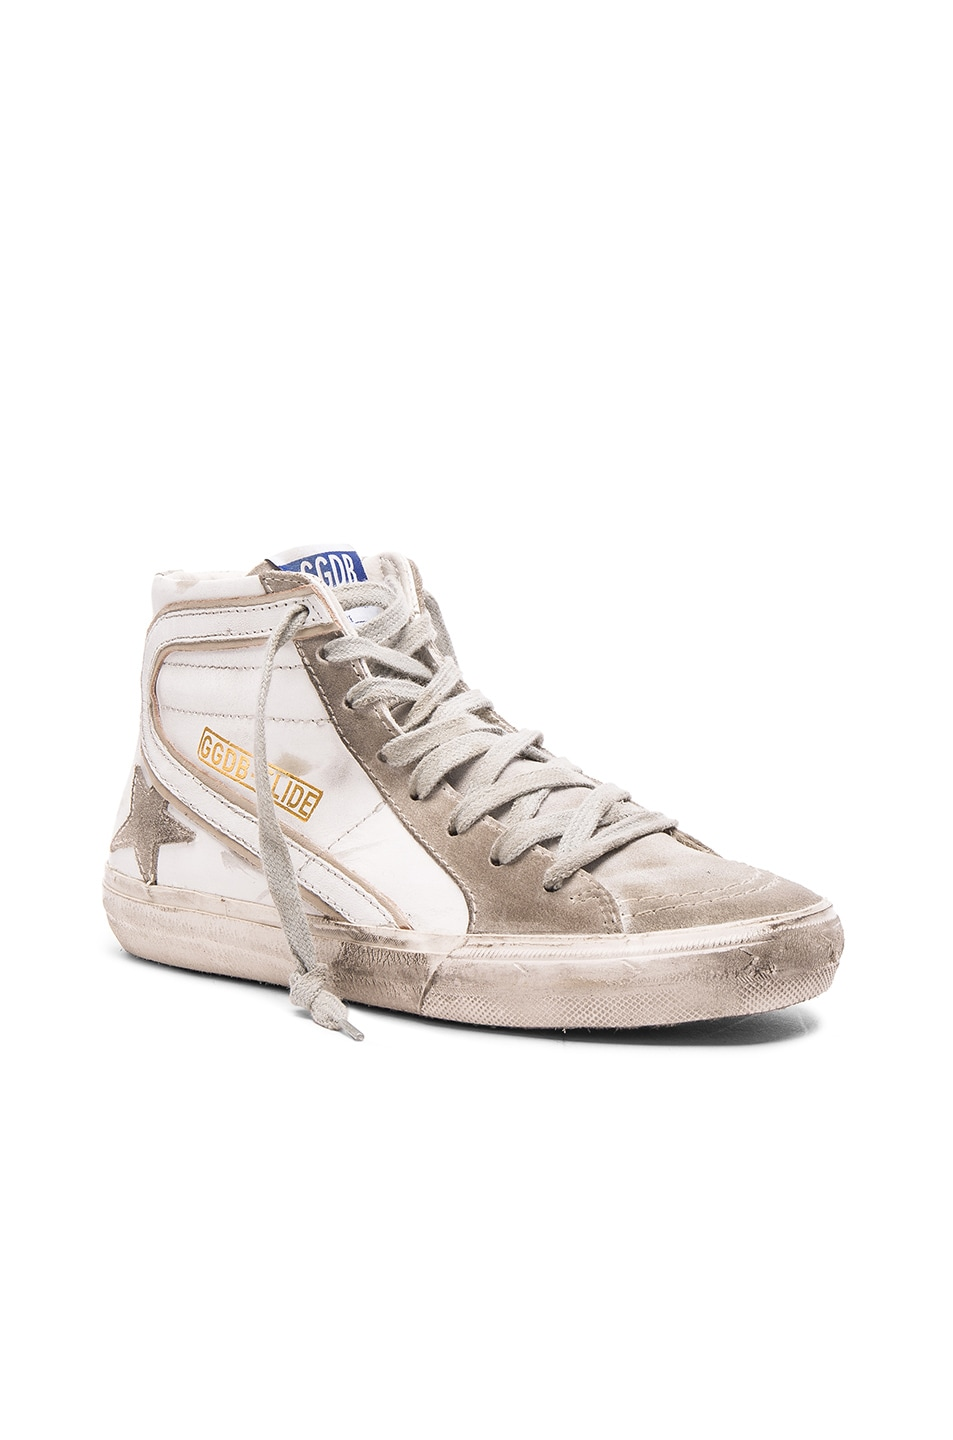 Image 2 of Golden Goose Slide Sneakers in White Leather